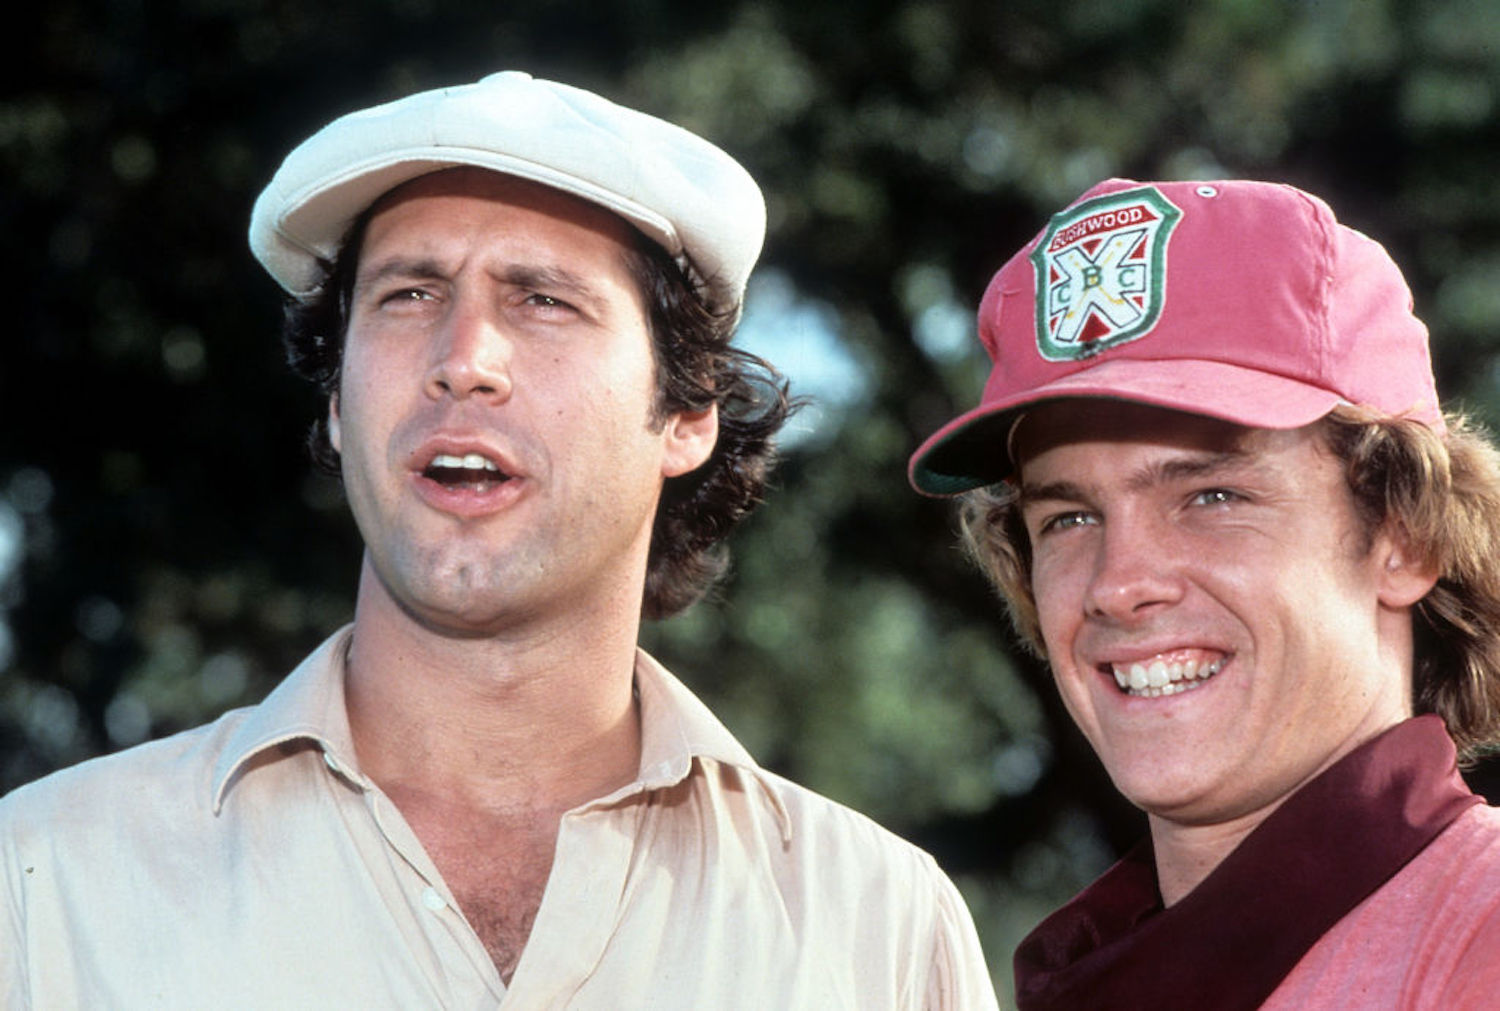 Danny Noonan is the most famous movie caddie of all time, and the actor who played him on 'Caddyshack' wants to carry a bag at the U.S. Open.